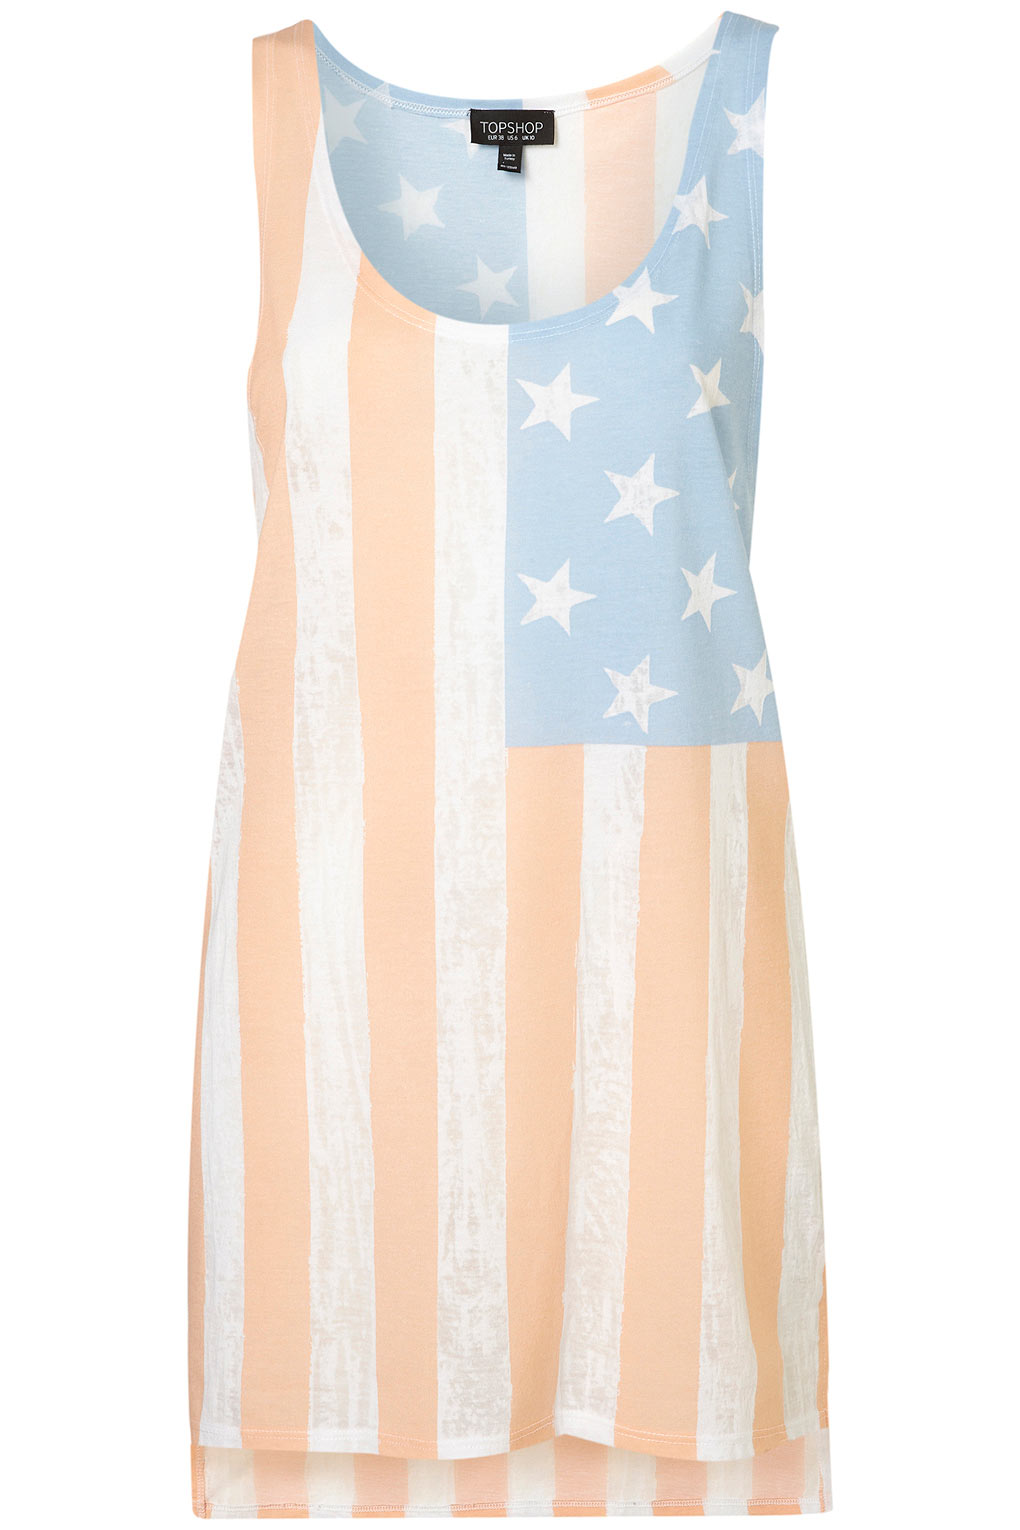 Burnout Flag Vest from TopShop